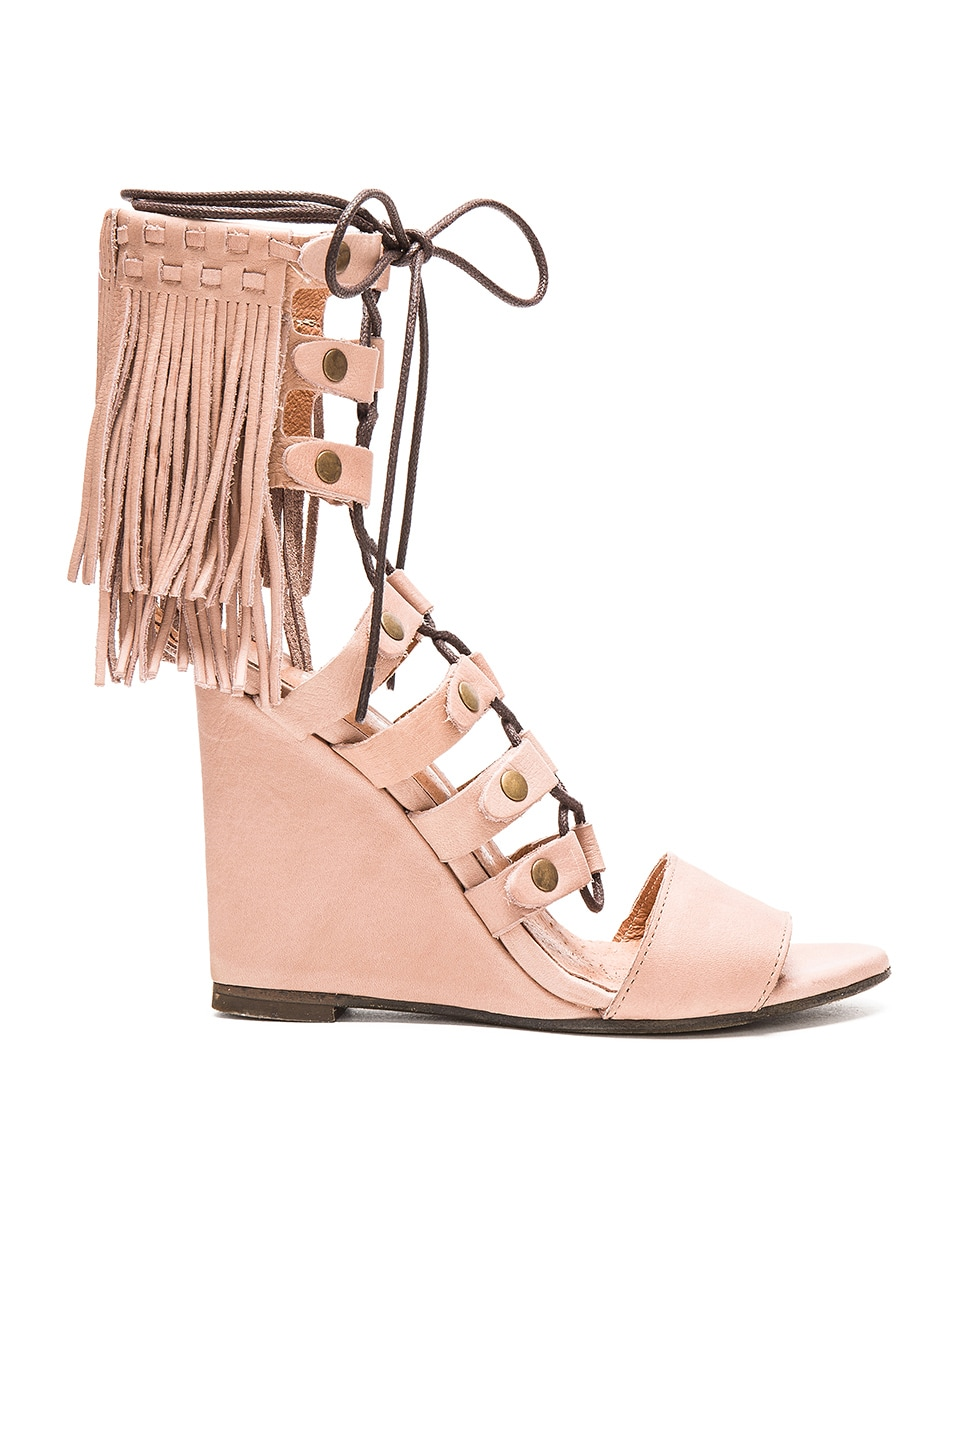 Free People Solstice Fringe Wedge in Blush